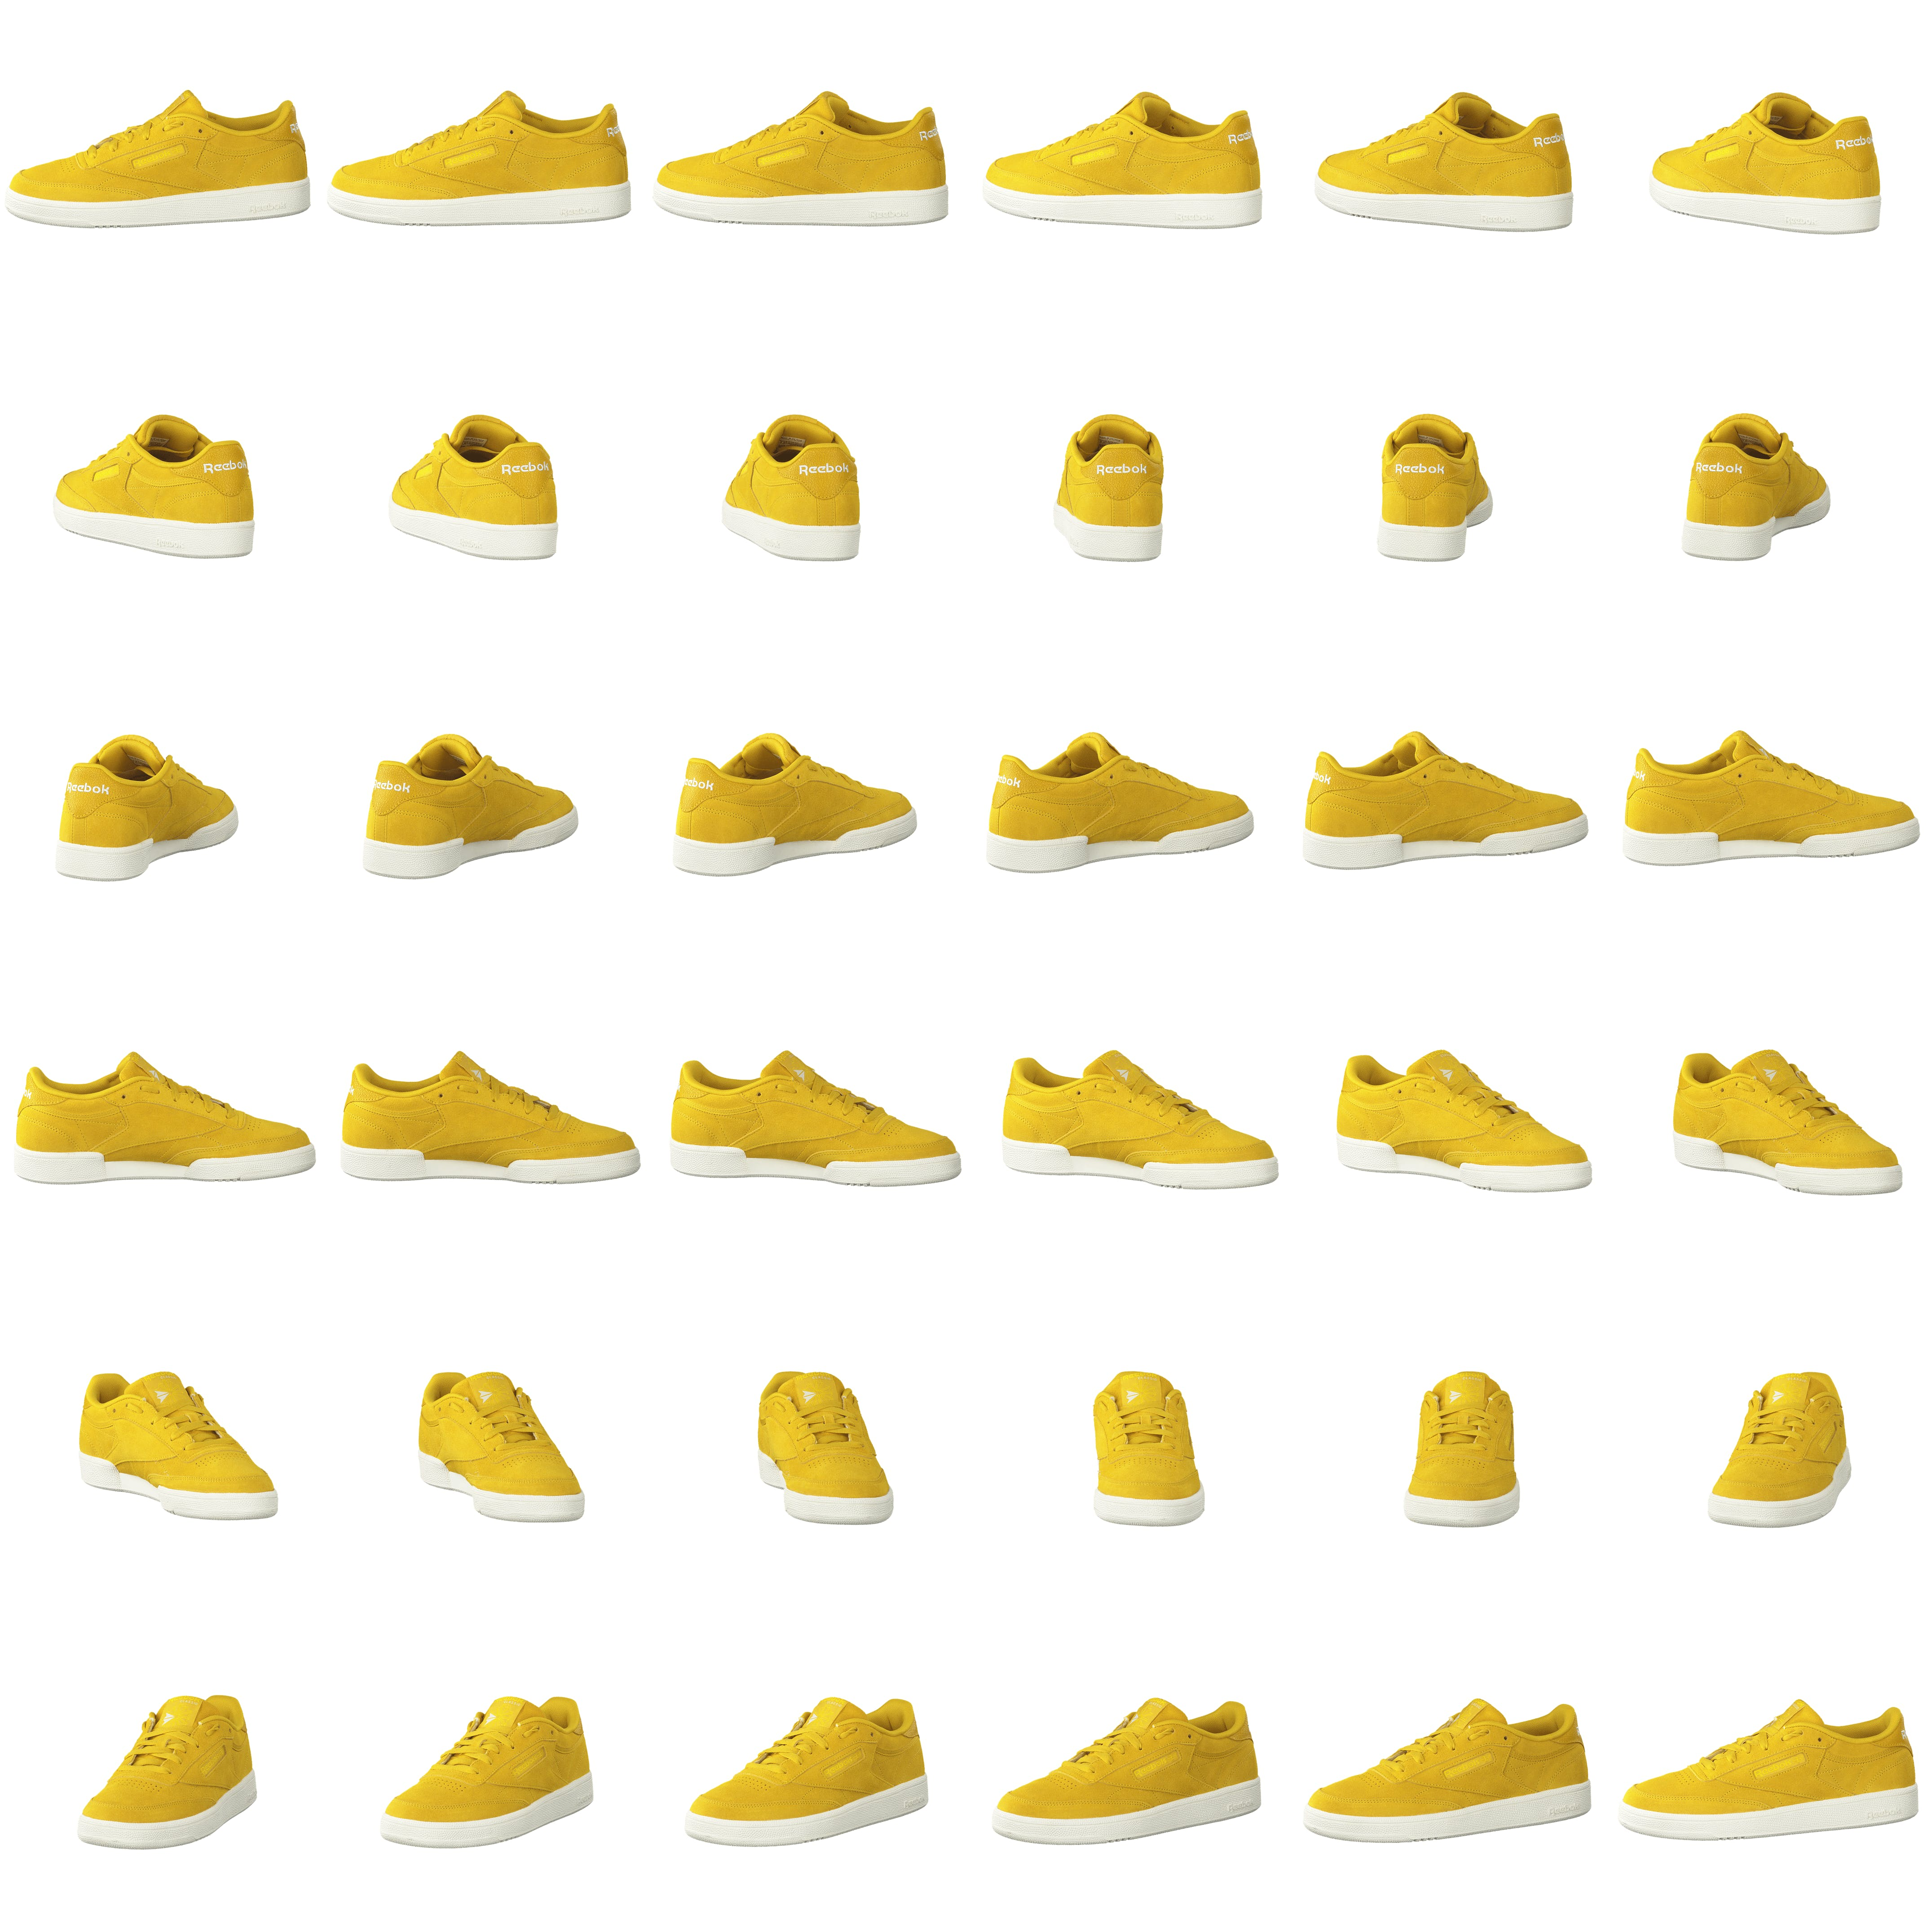 b4fcfb9079559 Buy Reebok Classic Club C 85 Urban Yellow go Yello yellow Shoes Online